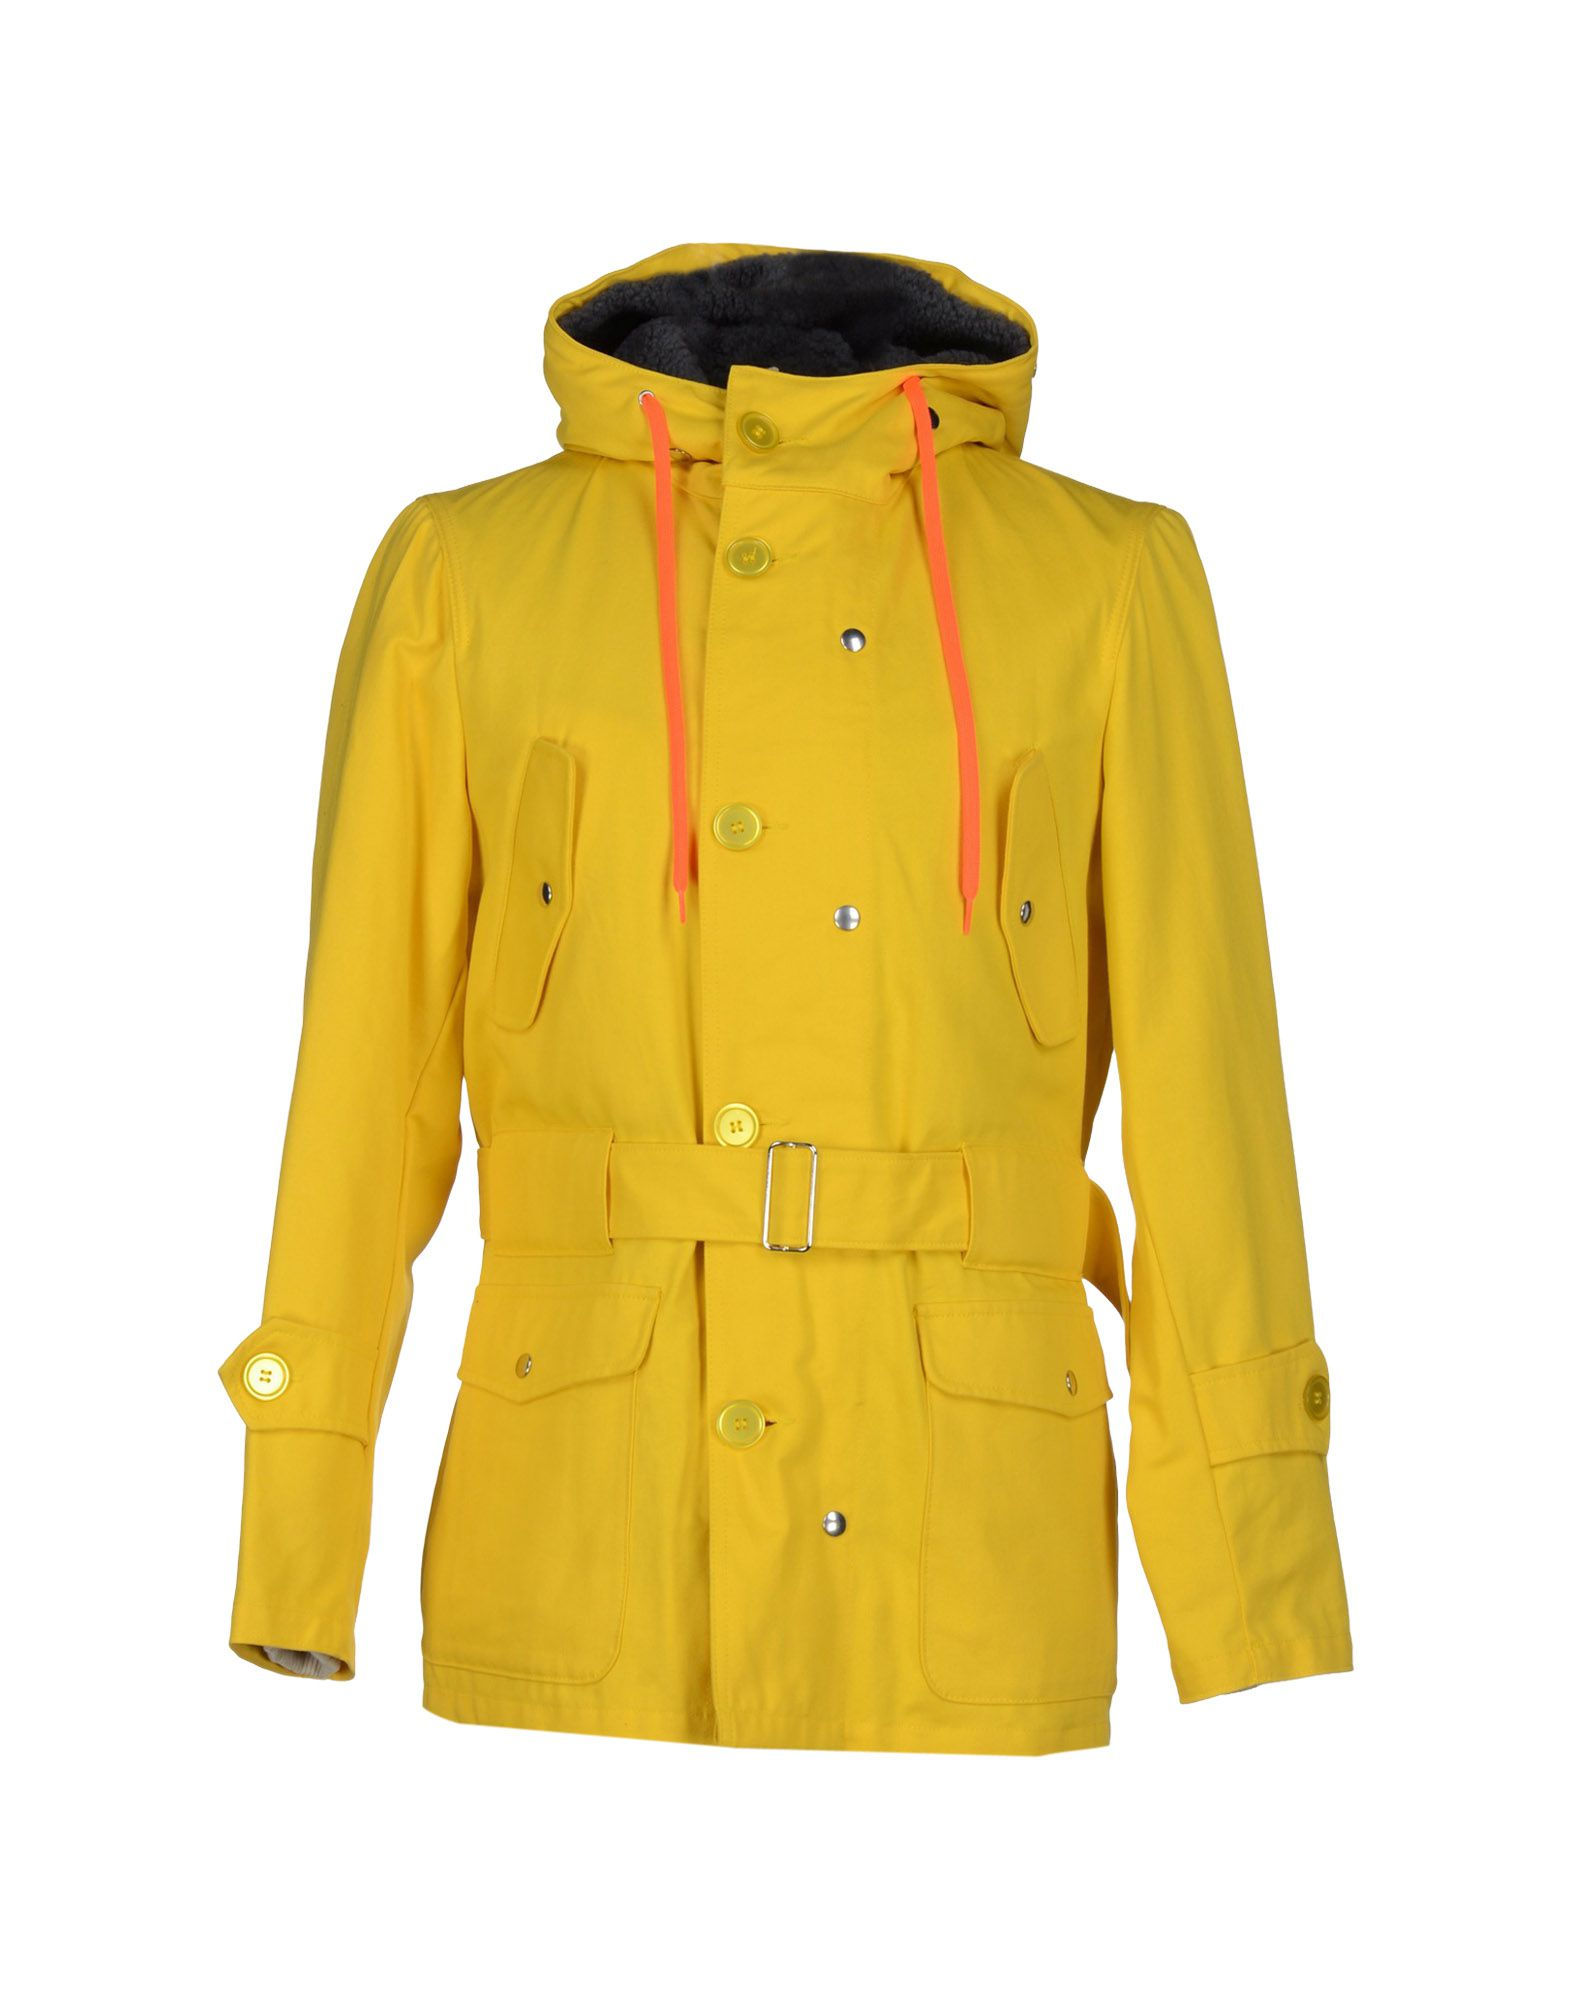 Equipe 70 Jacket in Yellow for Men | Lyst